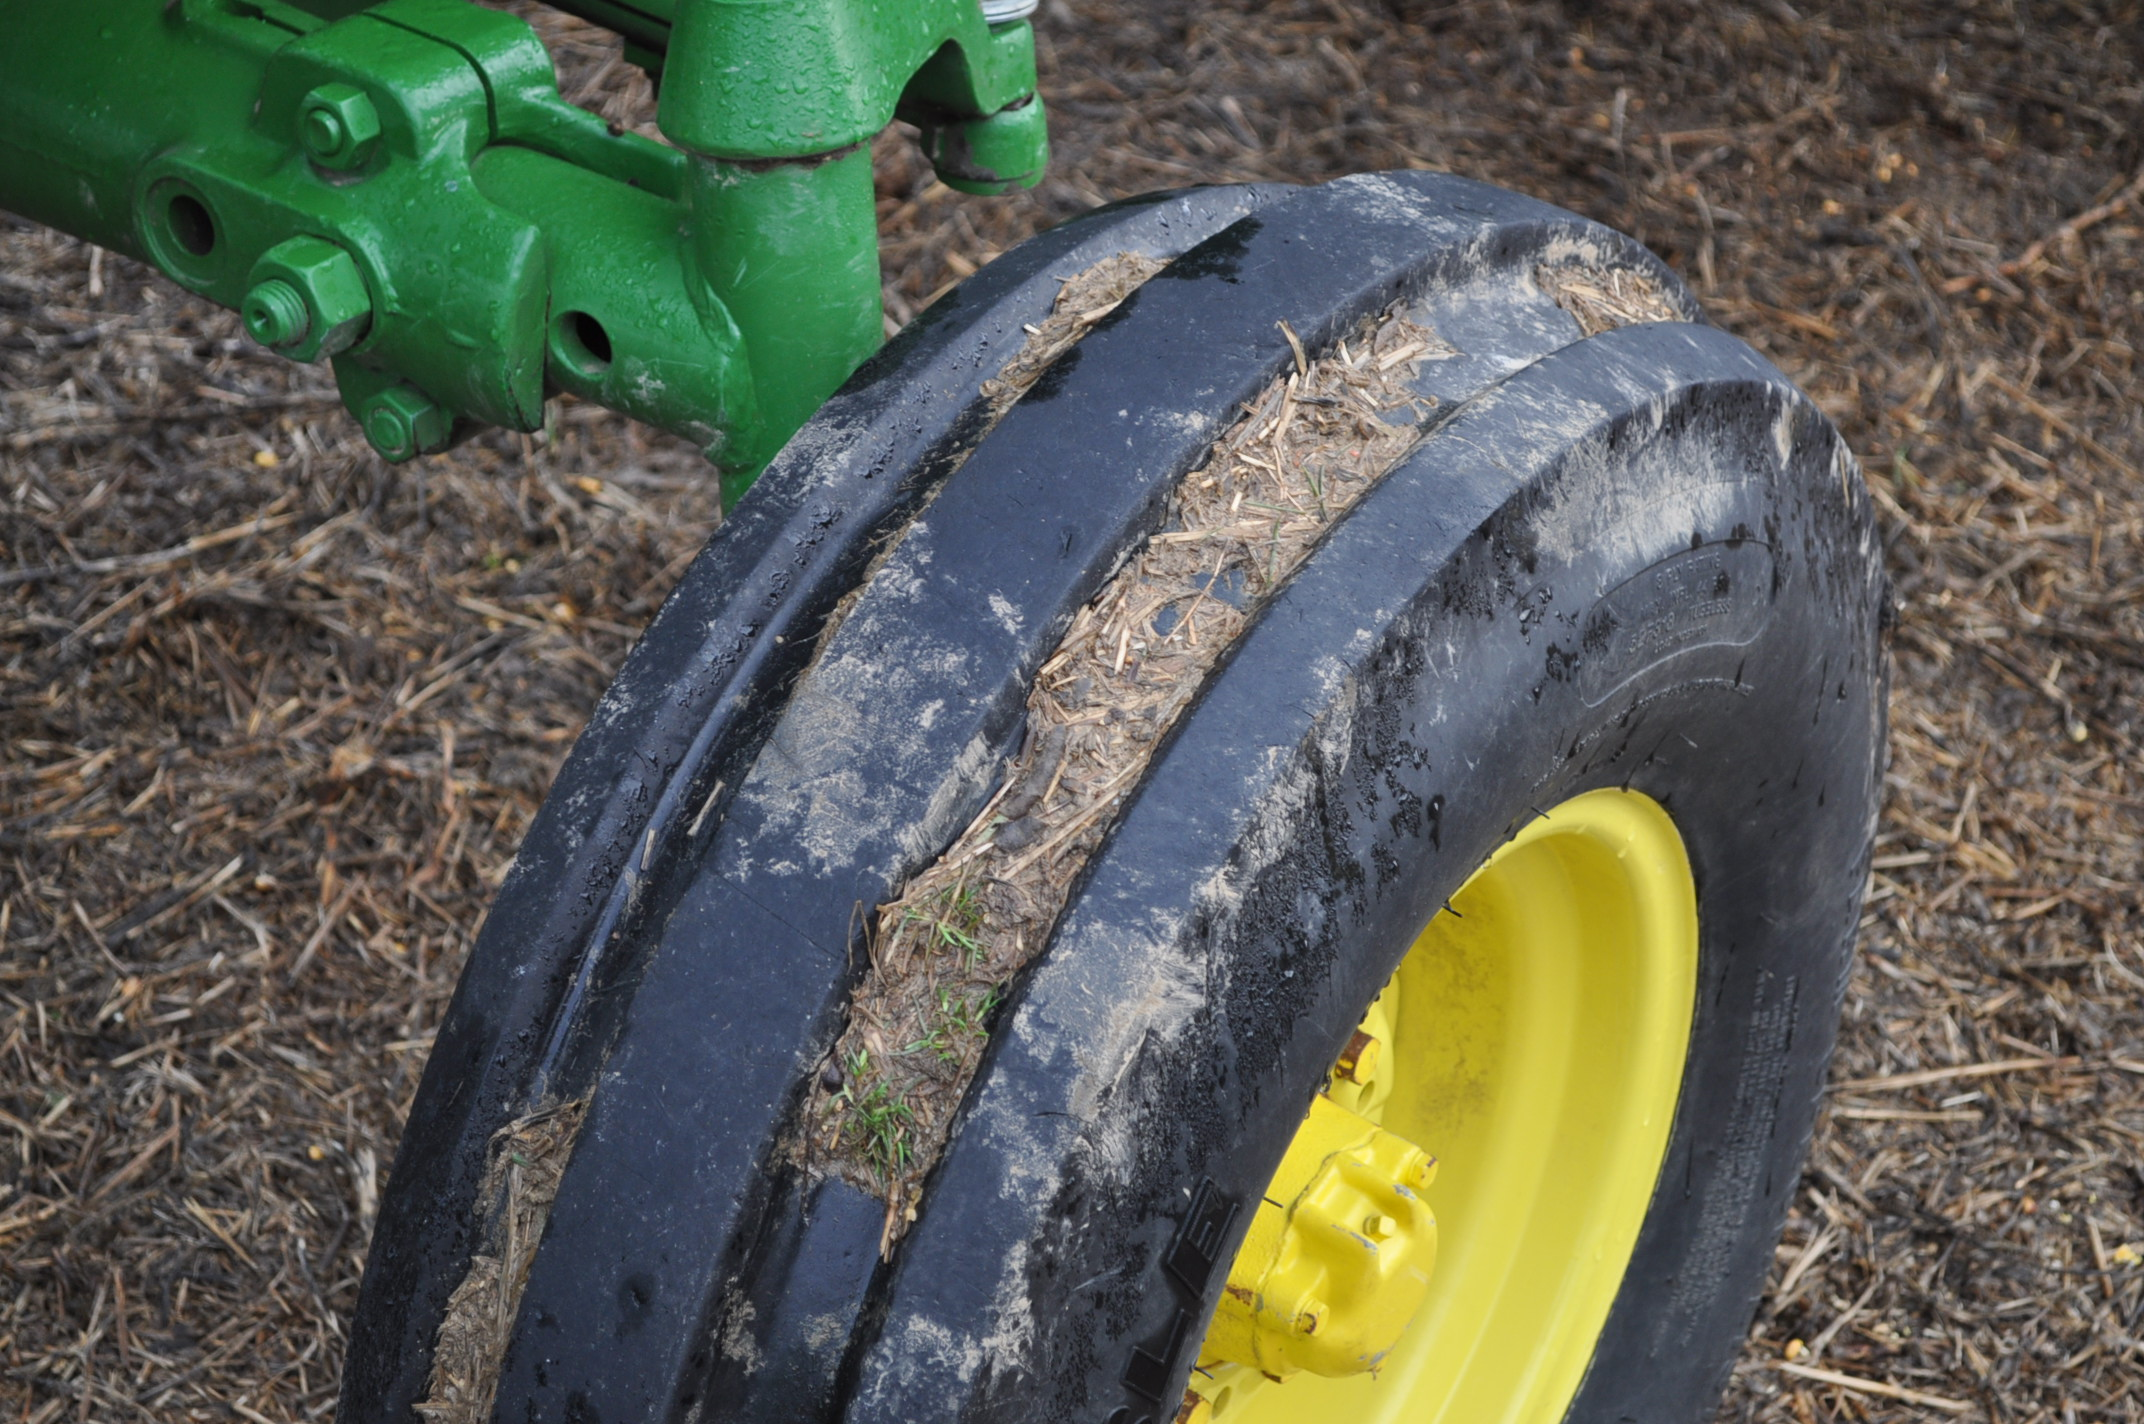 John Deere 4020 tractor, diesel, 18.4-34 tires w/ clamp on dual rims, 11L-15 front, ROPS w/ - Image 6 of 22